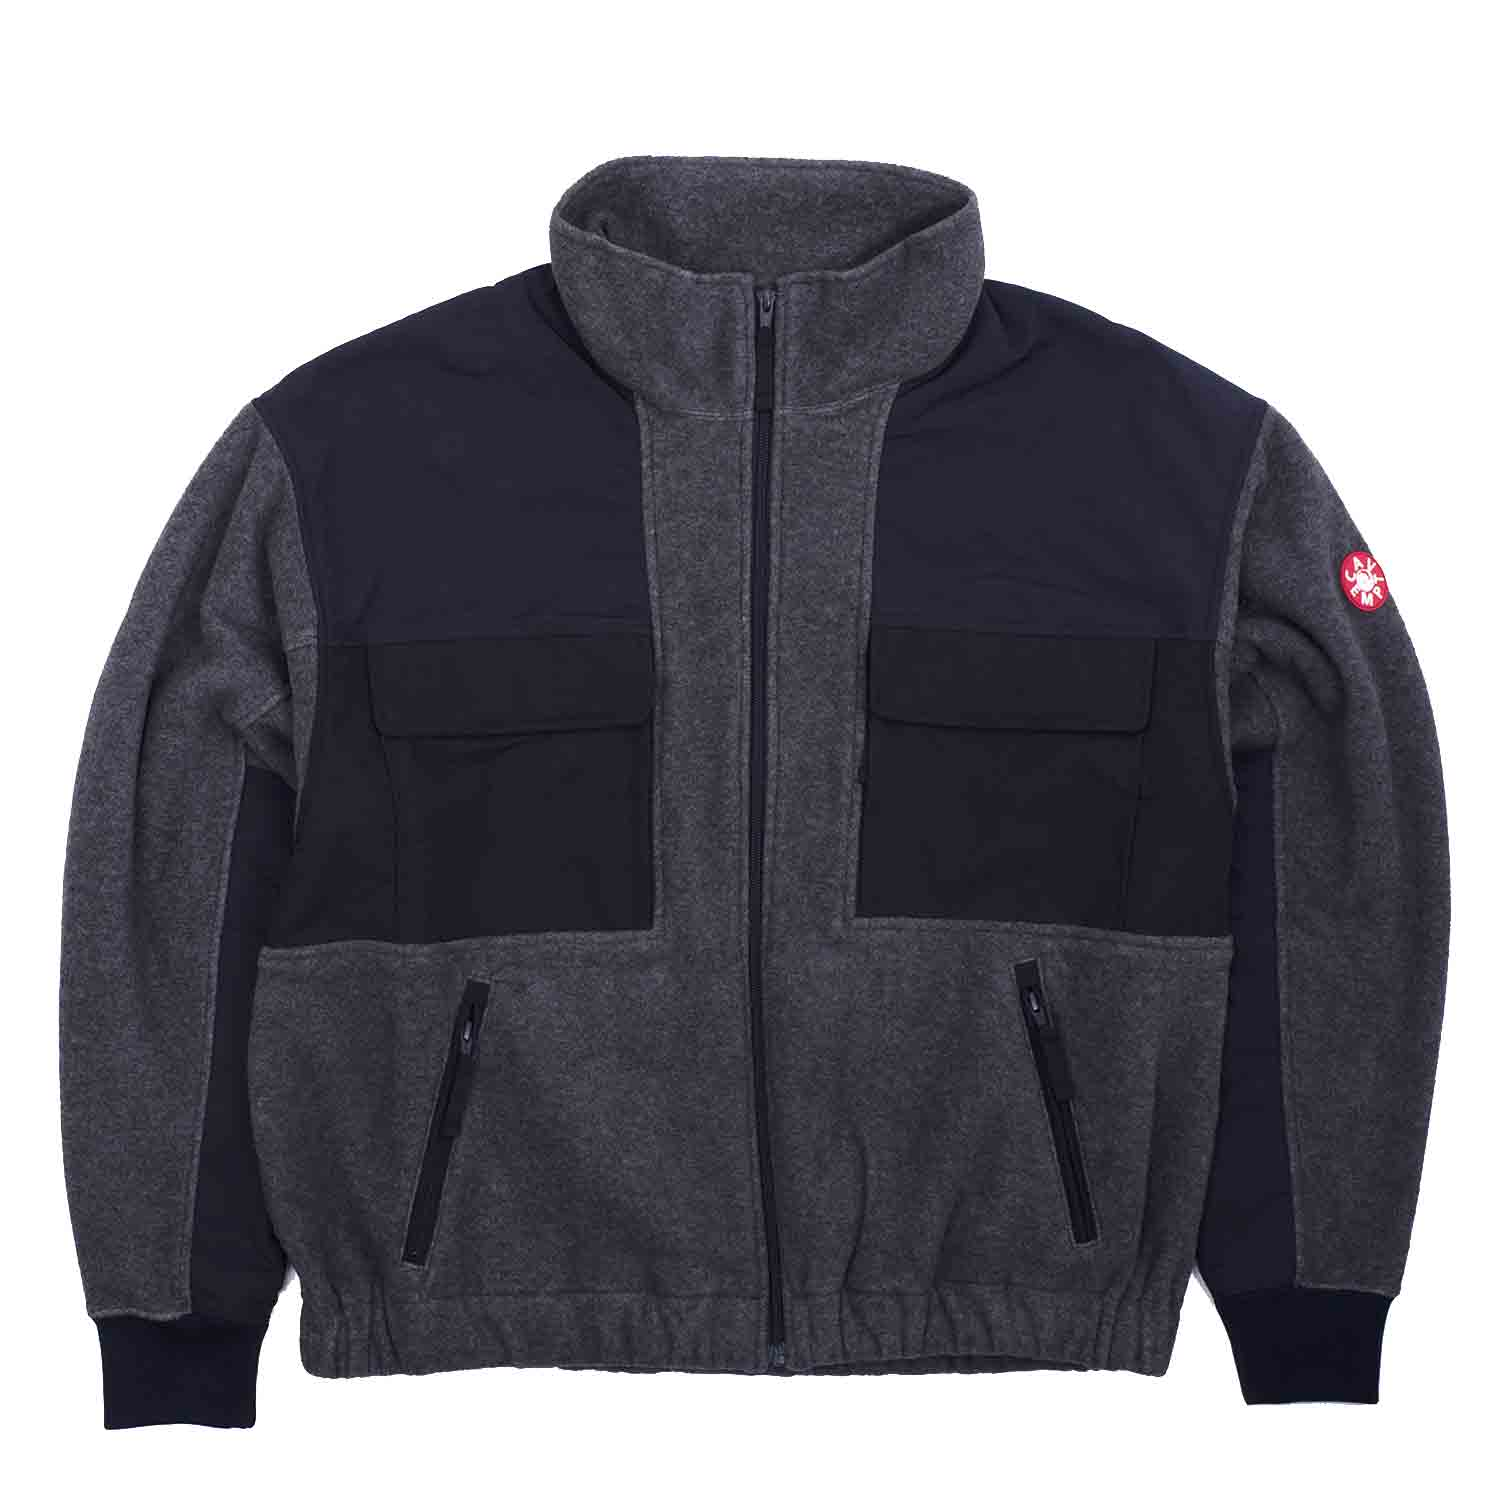 Jackets Vests Outerwear & Sweaters Sweaters and Sweatshirts Tank Tops Baseball Caps FEATURED BRANDS. PROMOTIONAL CLOTHING SPOTLIGHT: The North Face® Tech 1/4-Zip Fleece From $ No minimum quantity Elevate Women's Jaya Knit Jacket From $ No minimum quantity.